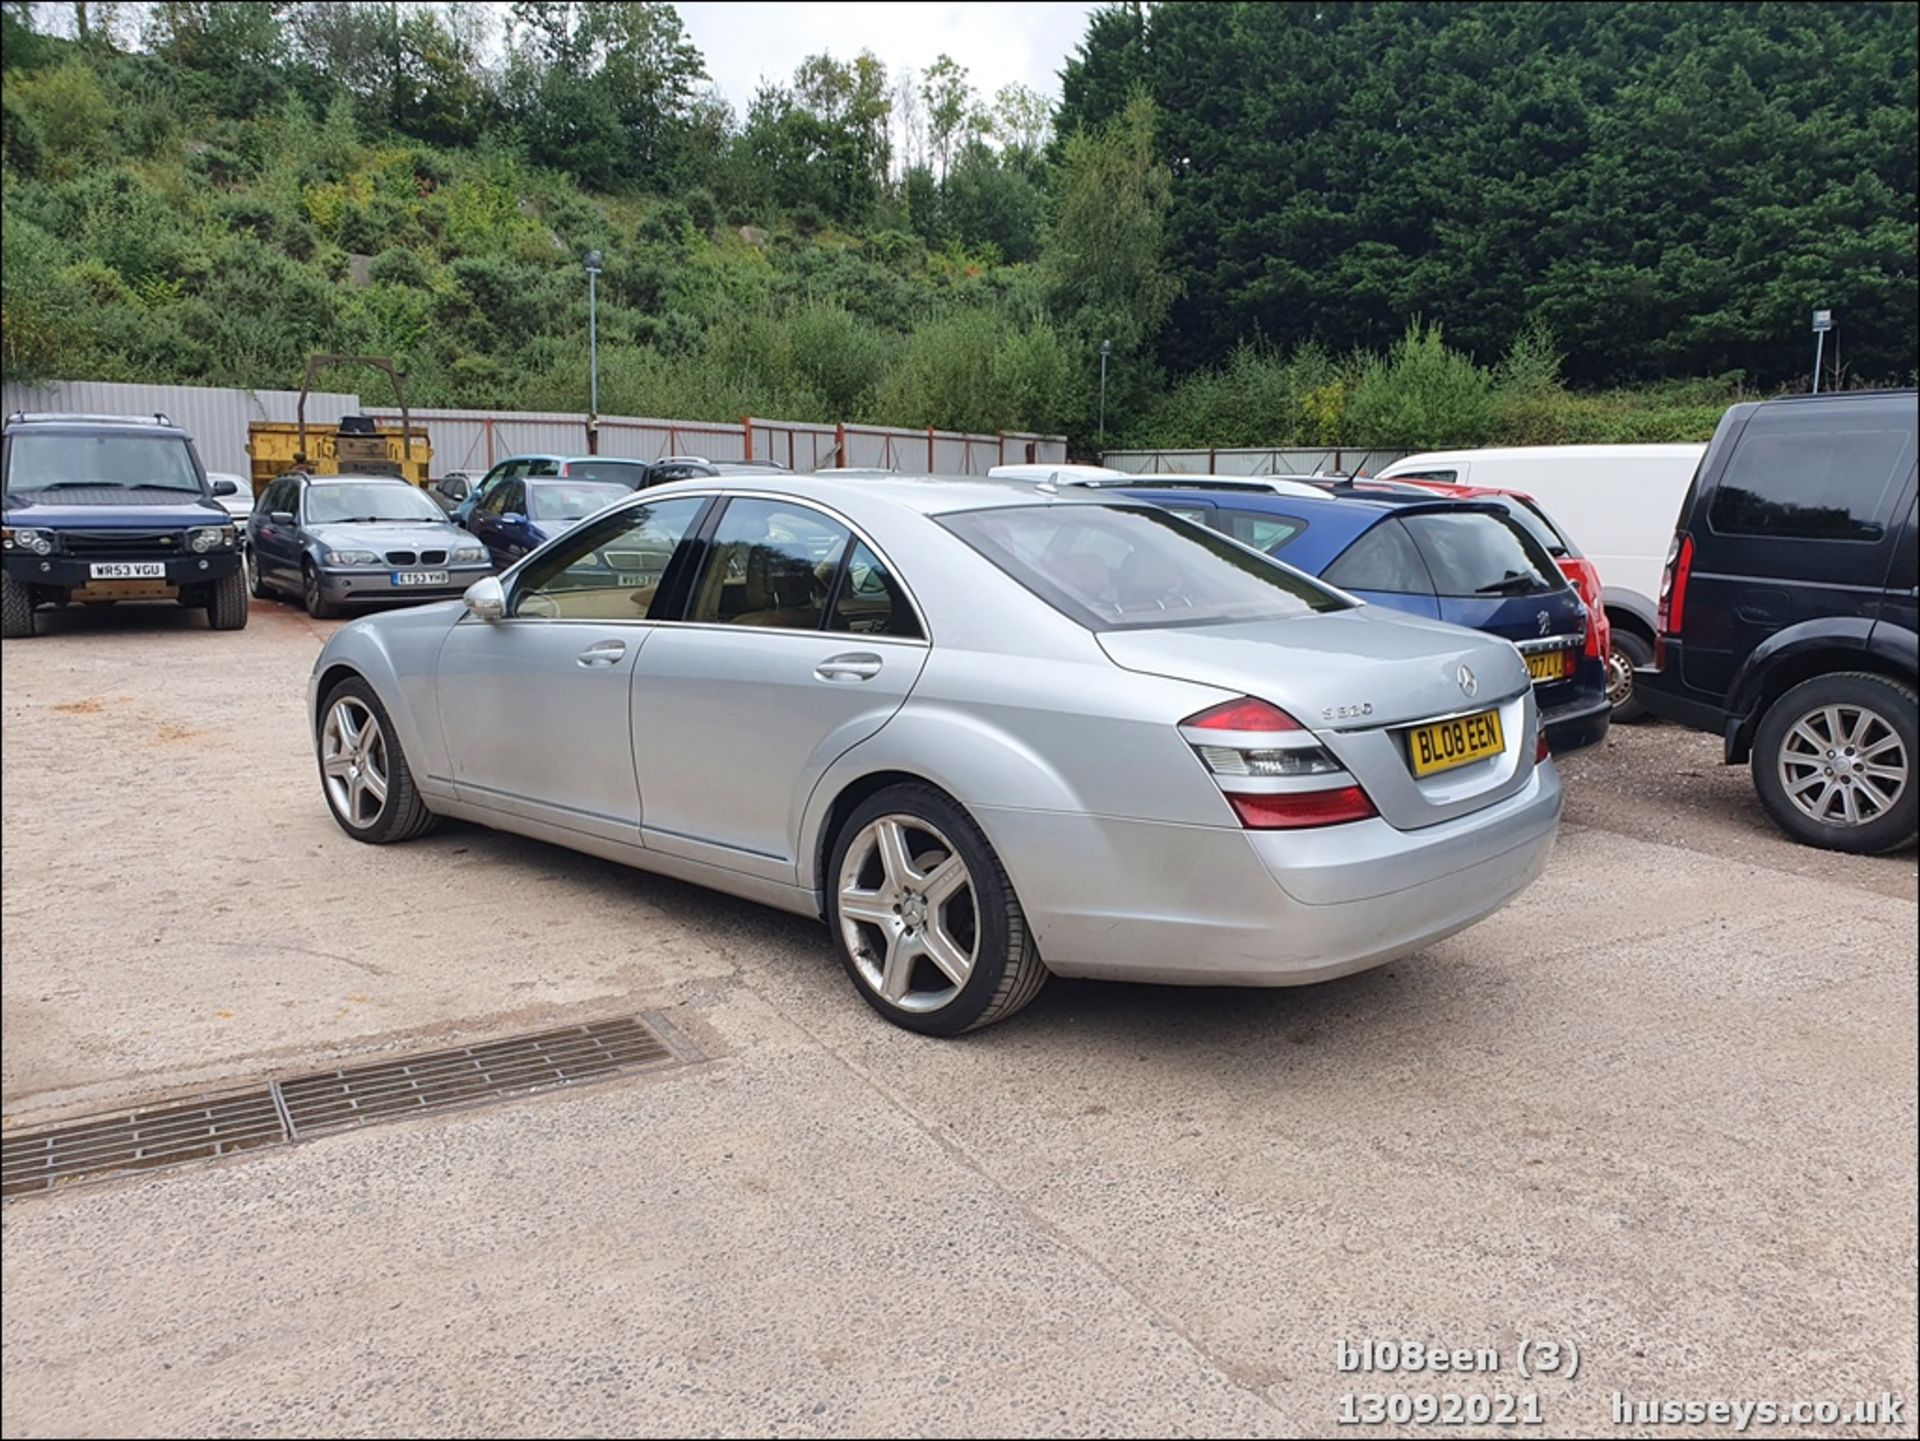 08/08 MERCEDES S320 CDI AUTO - 2987cc 4dr Saloon (Silver, 205k) - Image 3 of 16